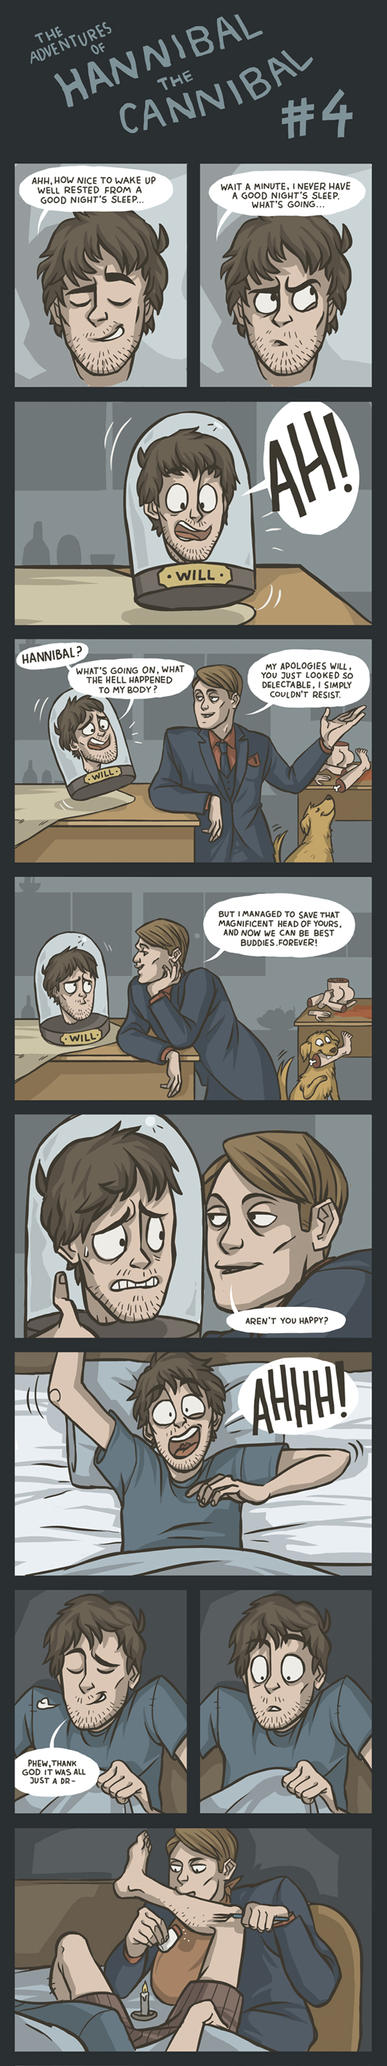 (Comic) The Adventures of Hannibal the Cannibal #4 by ekzotik